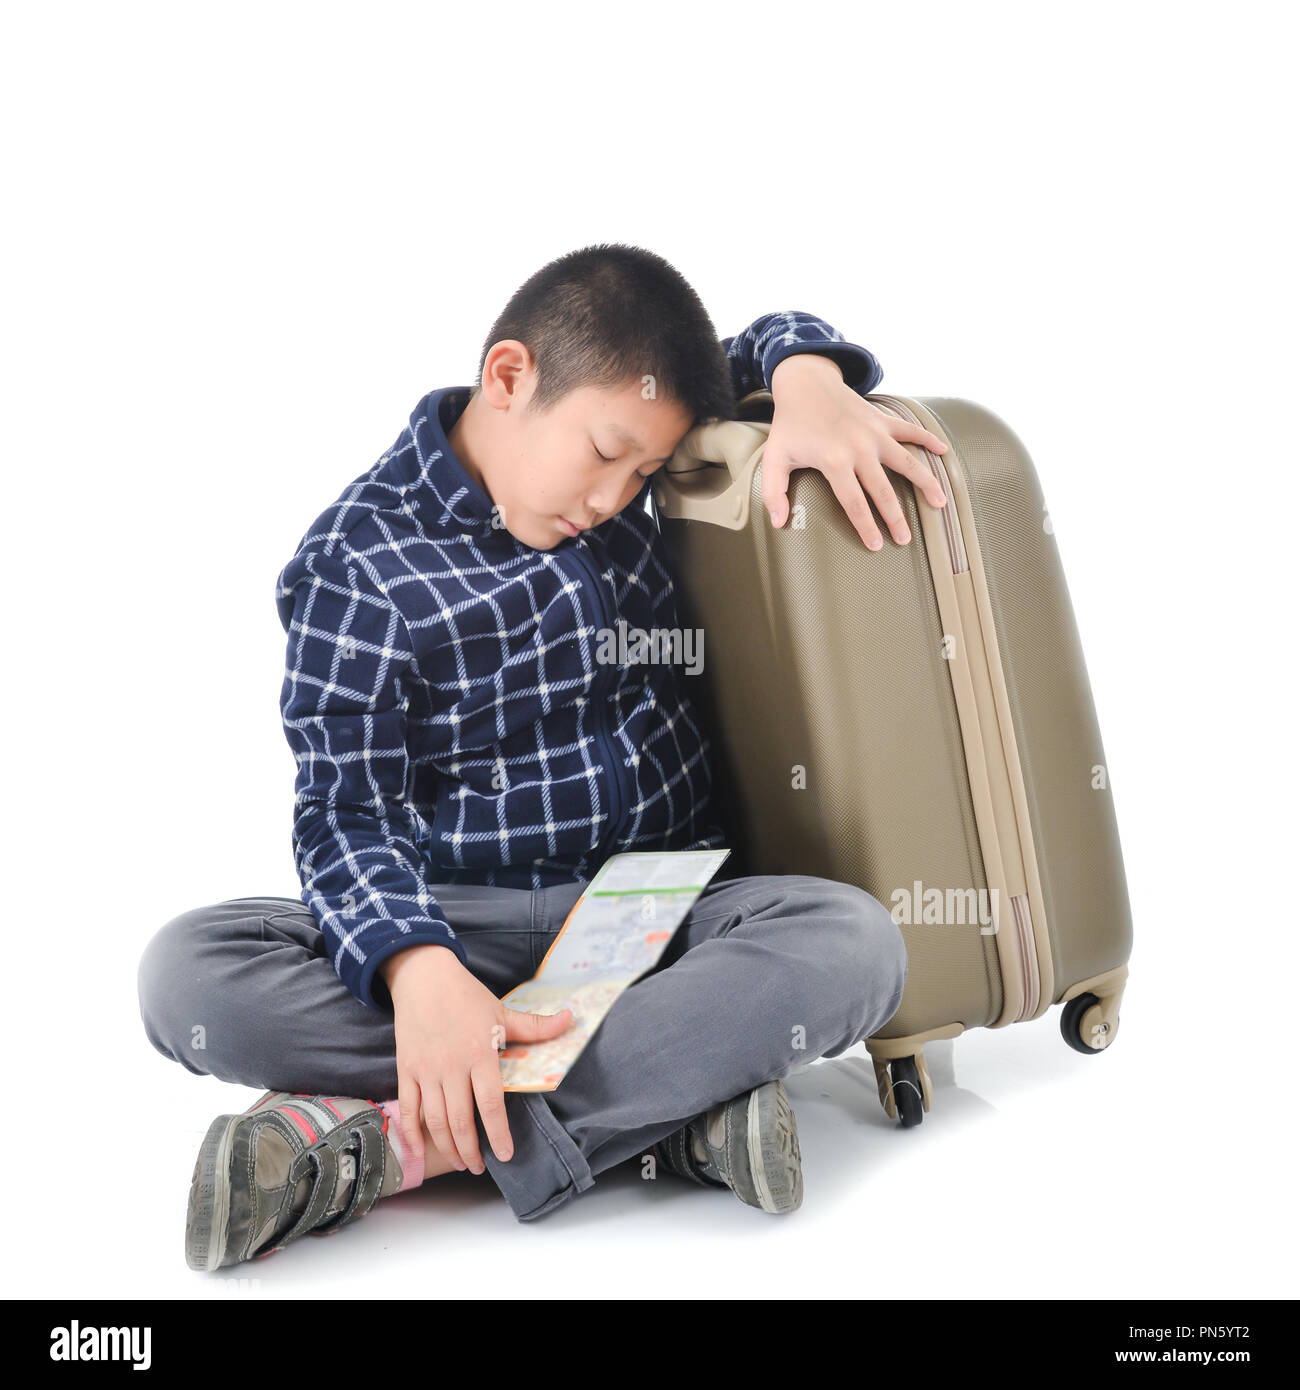 Asian boy sleeping with map and luggage on white background. - Stock Image